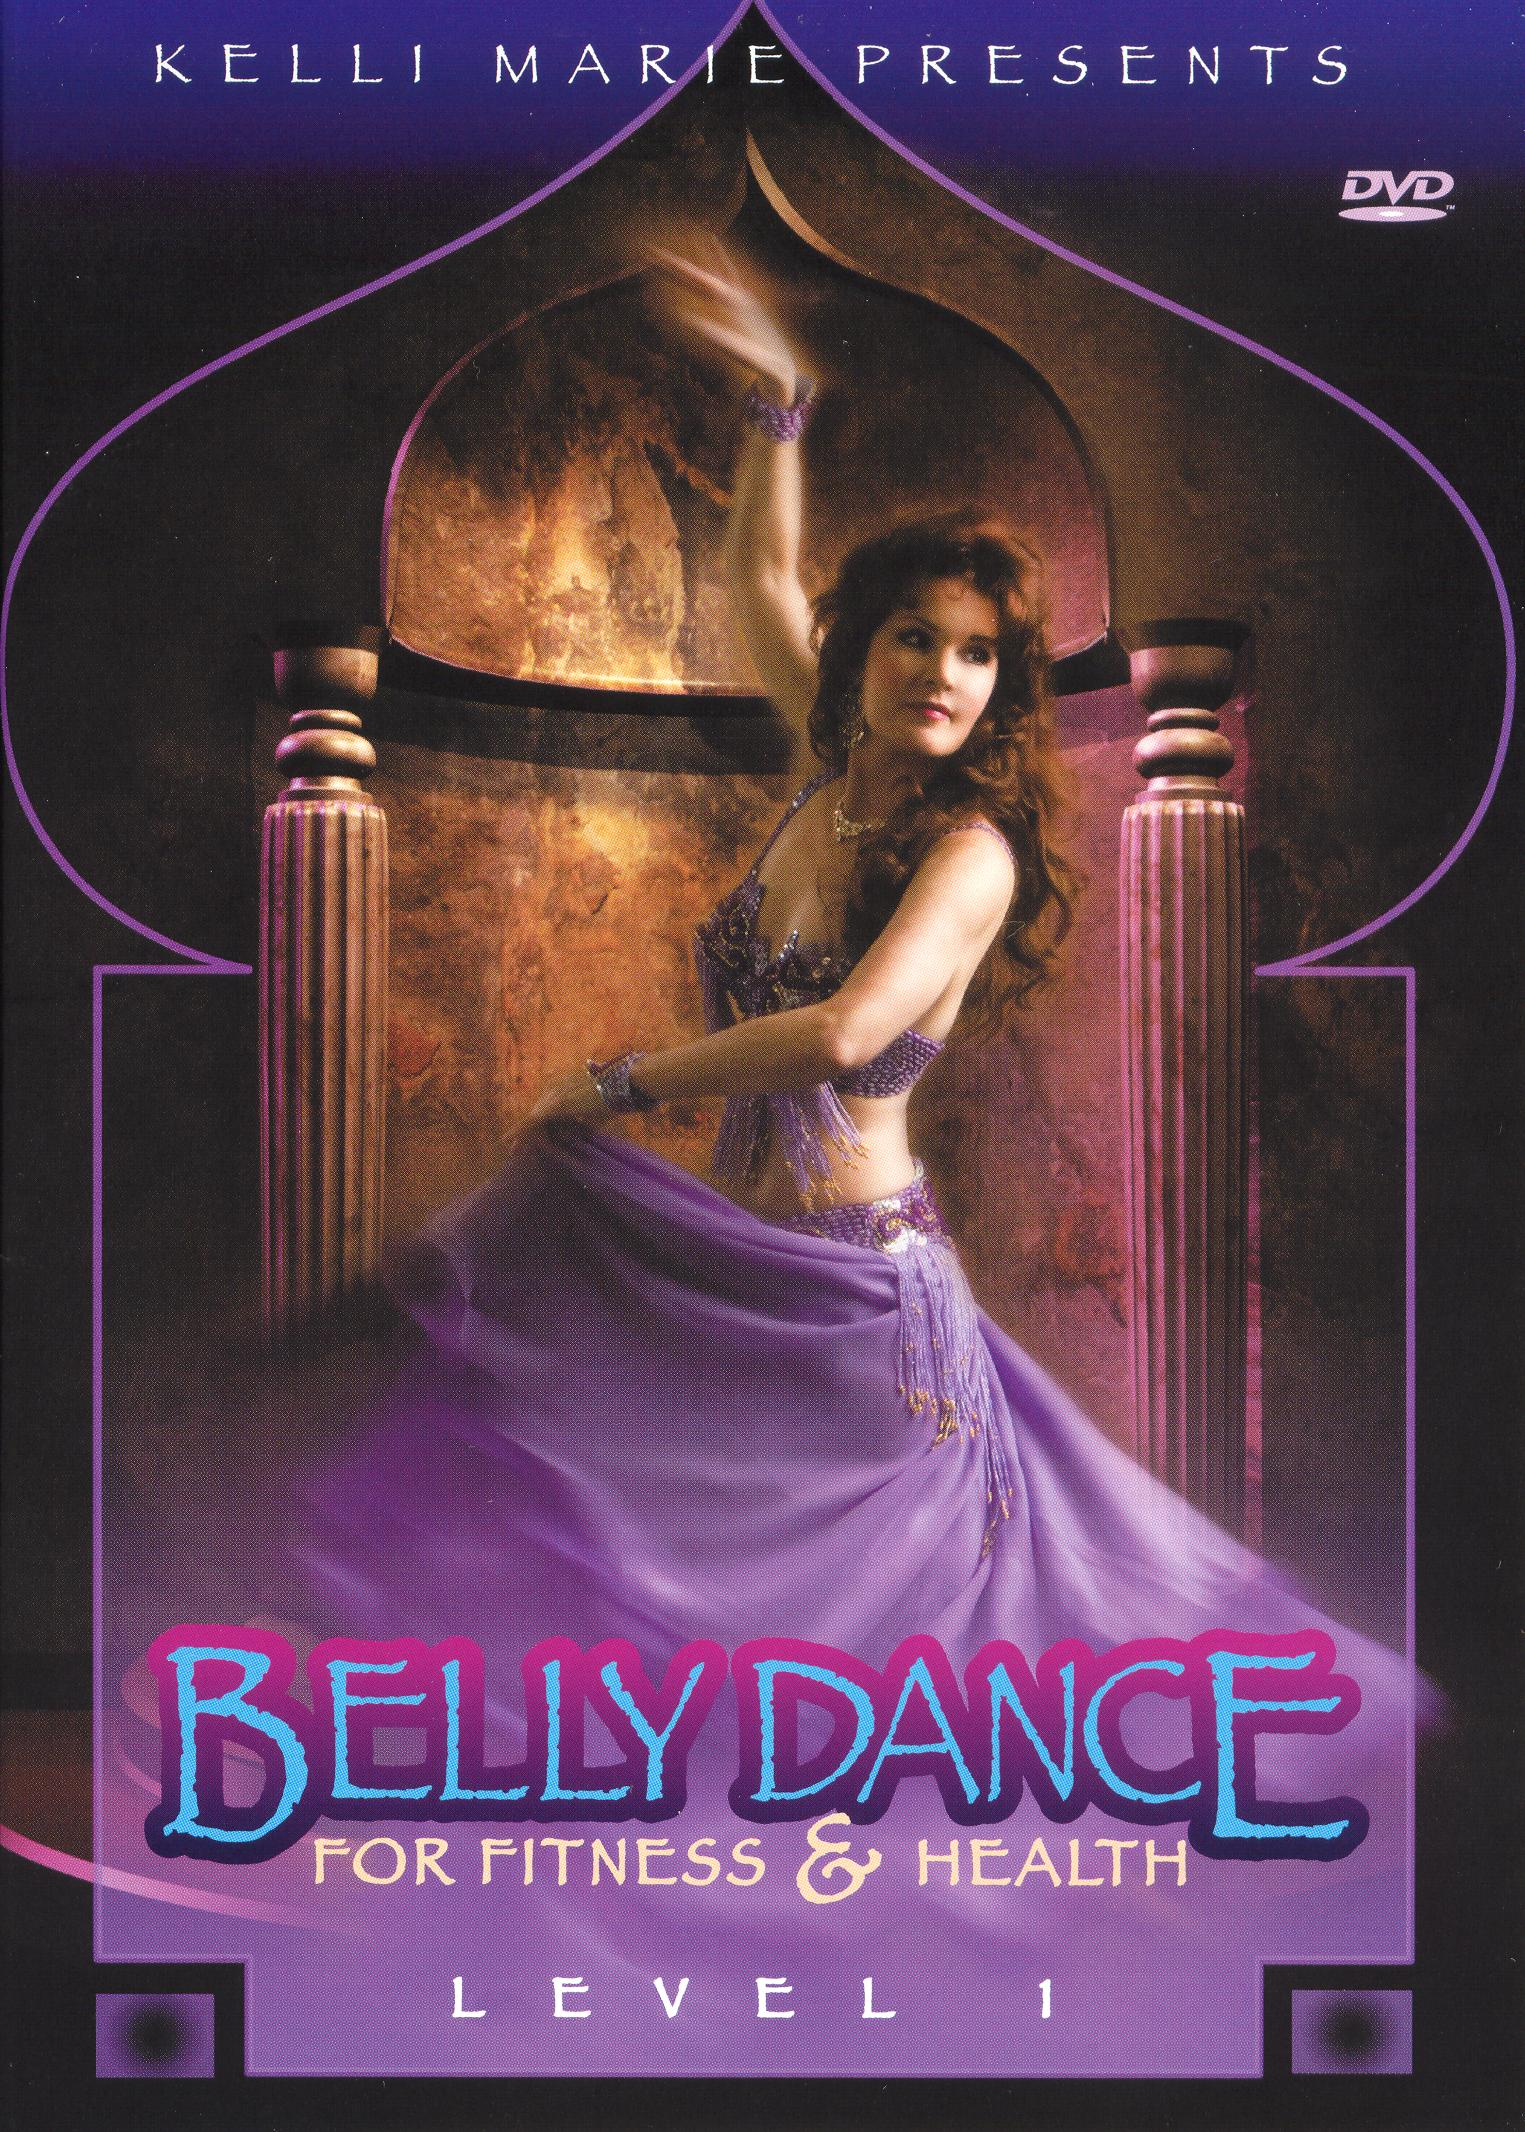 Kelli Marie: Bellydance for Fitness and Health with Kelli Marie